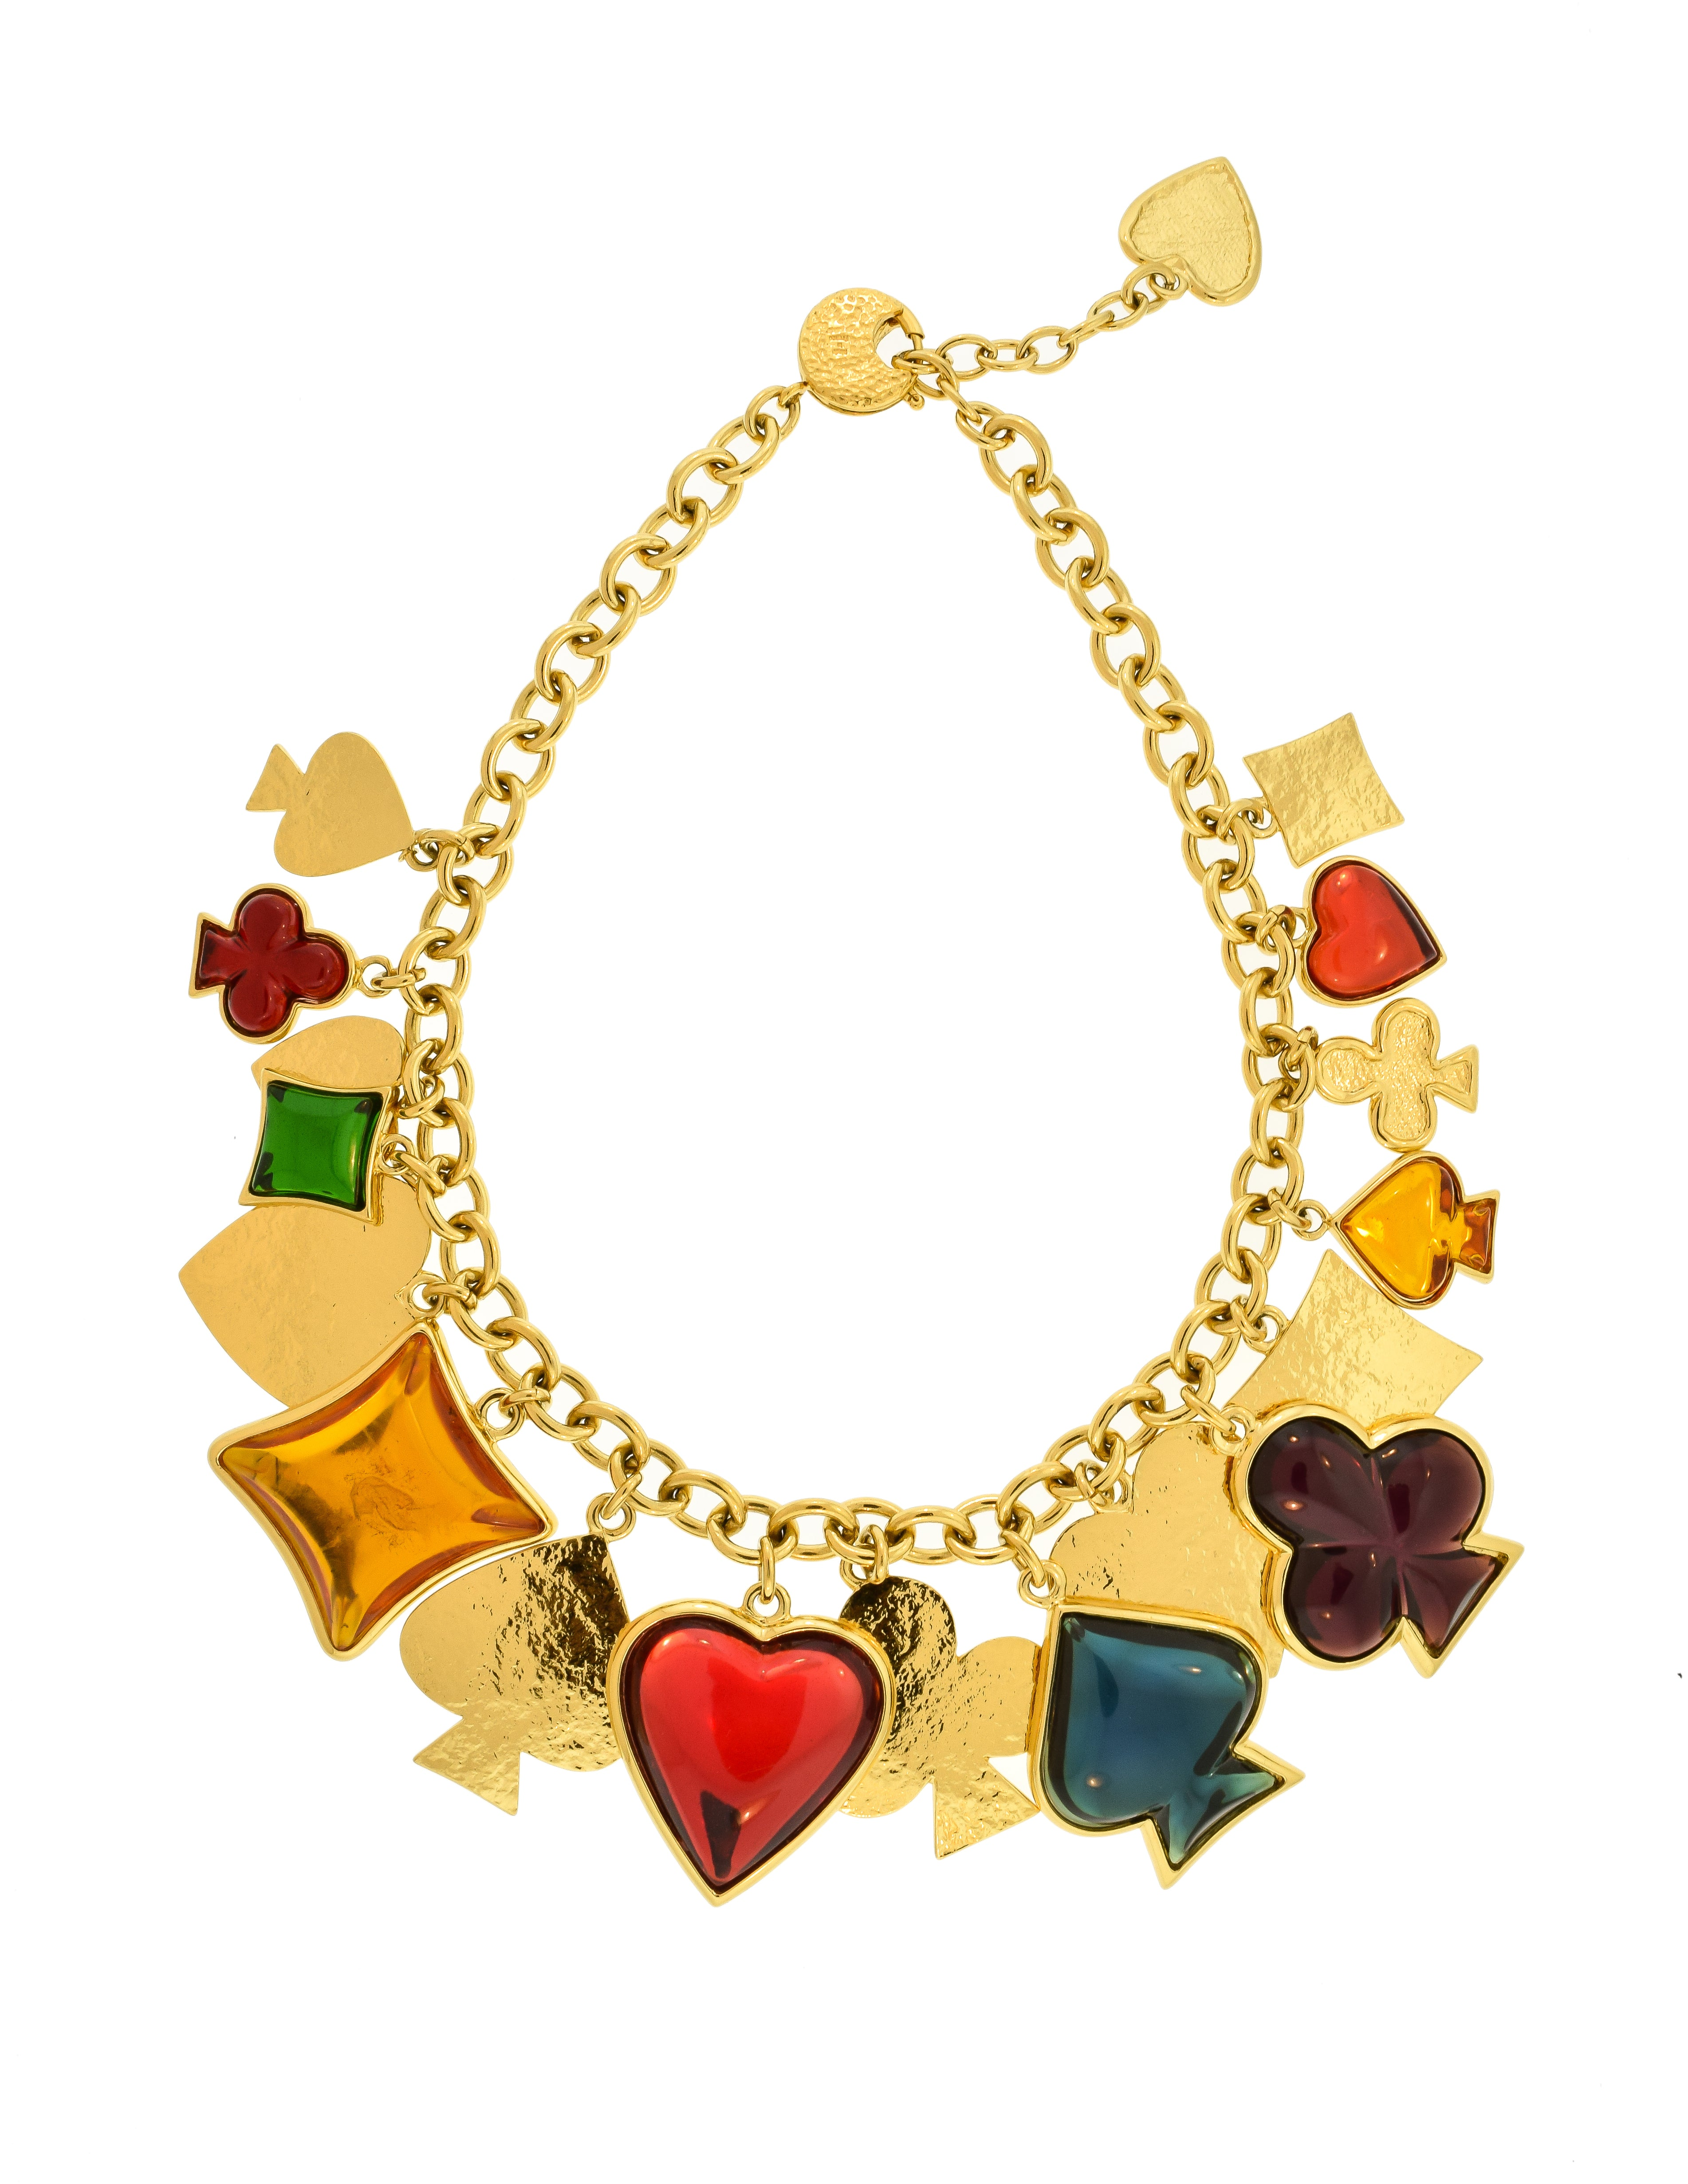 YSL Vintage Multicolor Playing Card Suits Pendant Charm Gold Collar Necklace